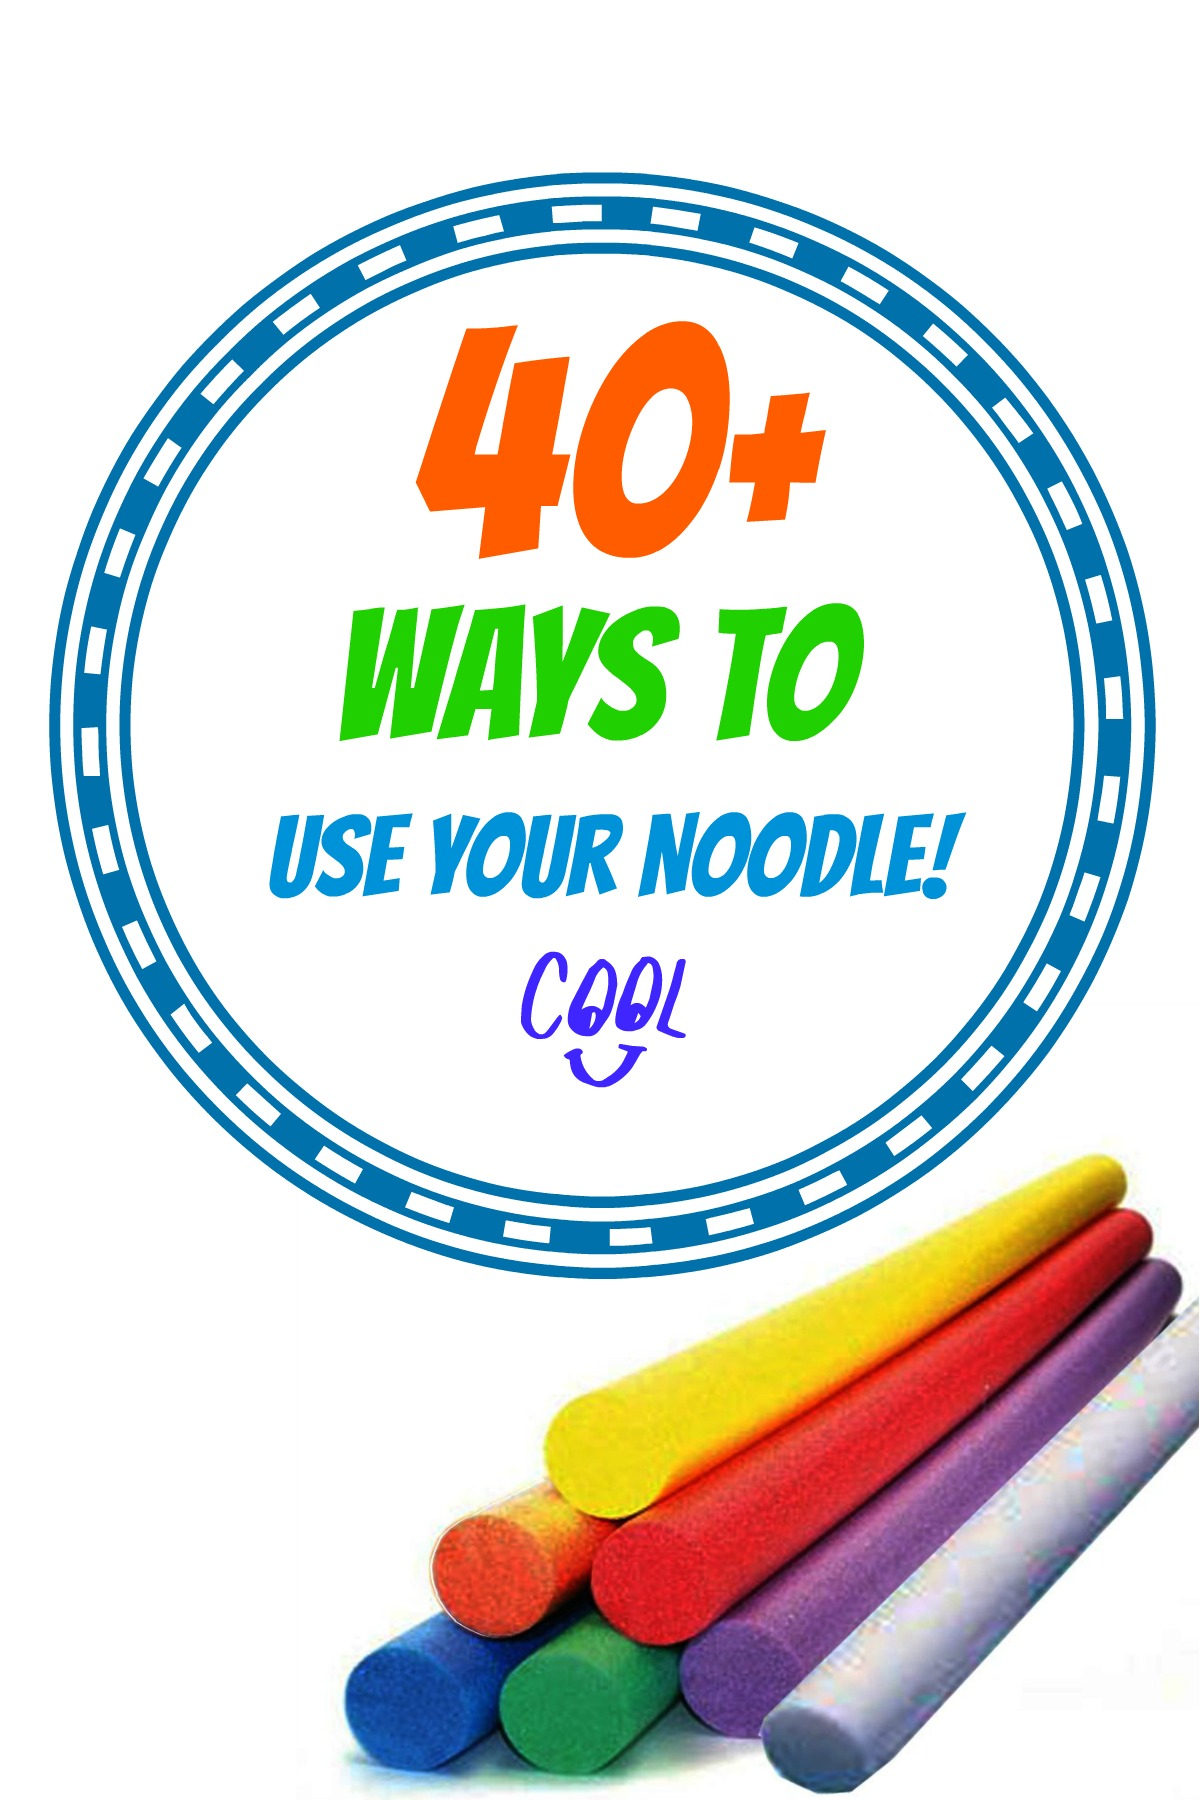 40+ Ways to use your pool noodle